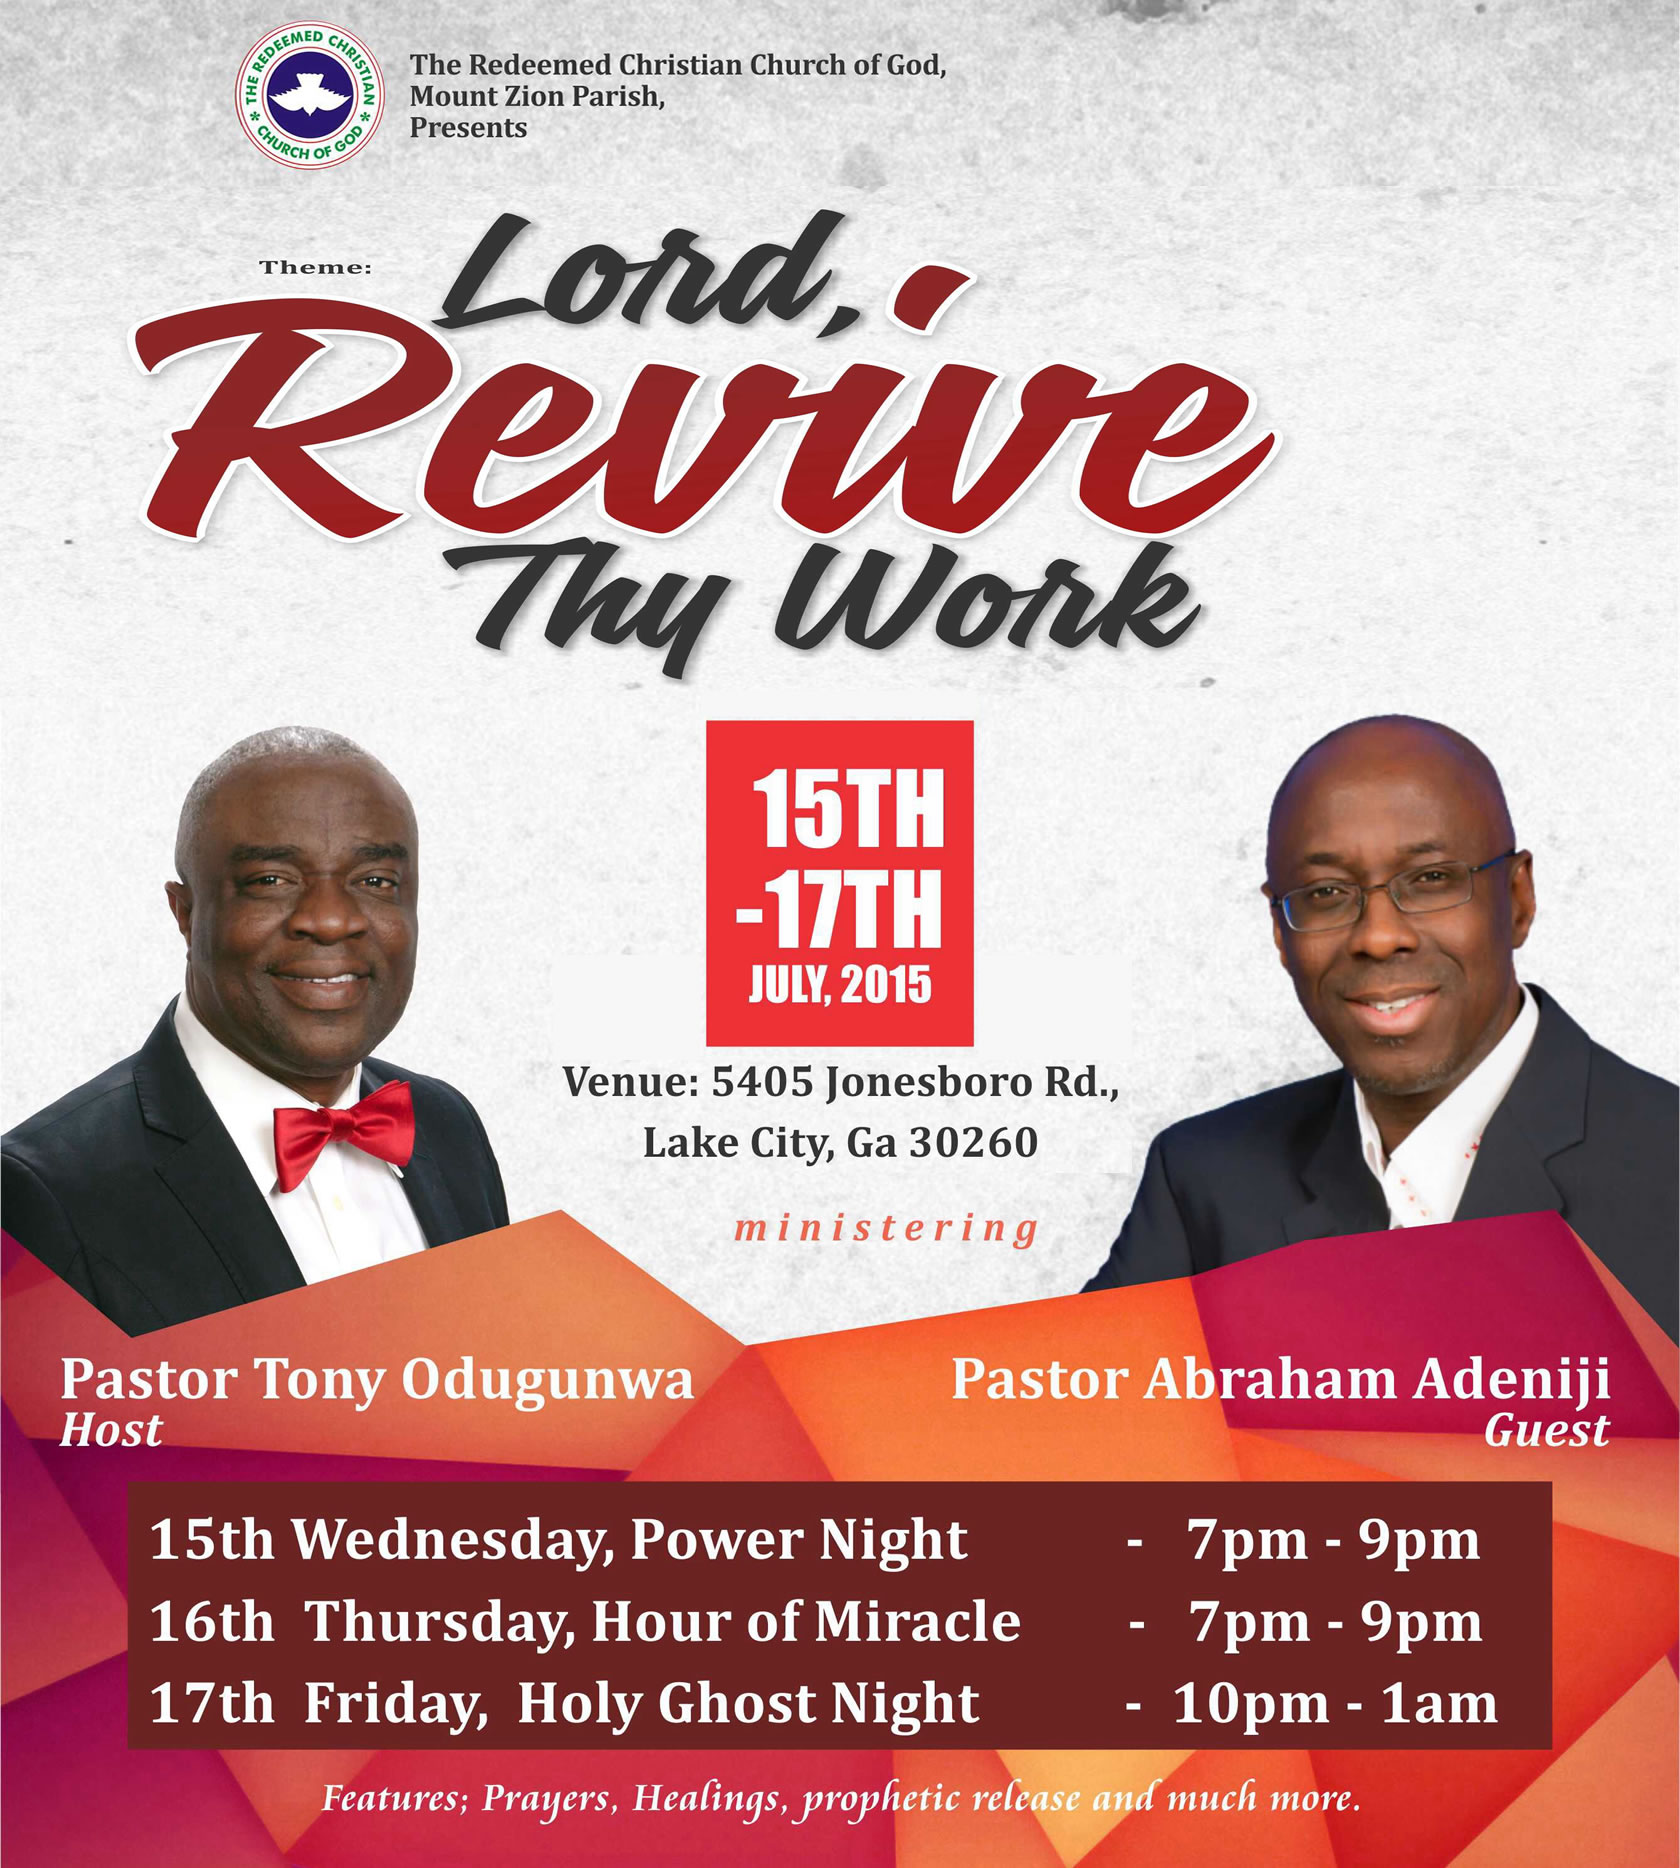 Day 1 Of Revival Program Tagged Lord Revive Thy Work